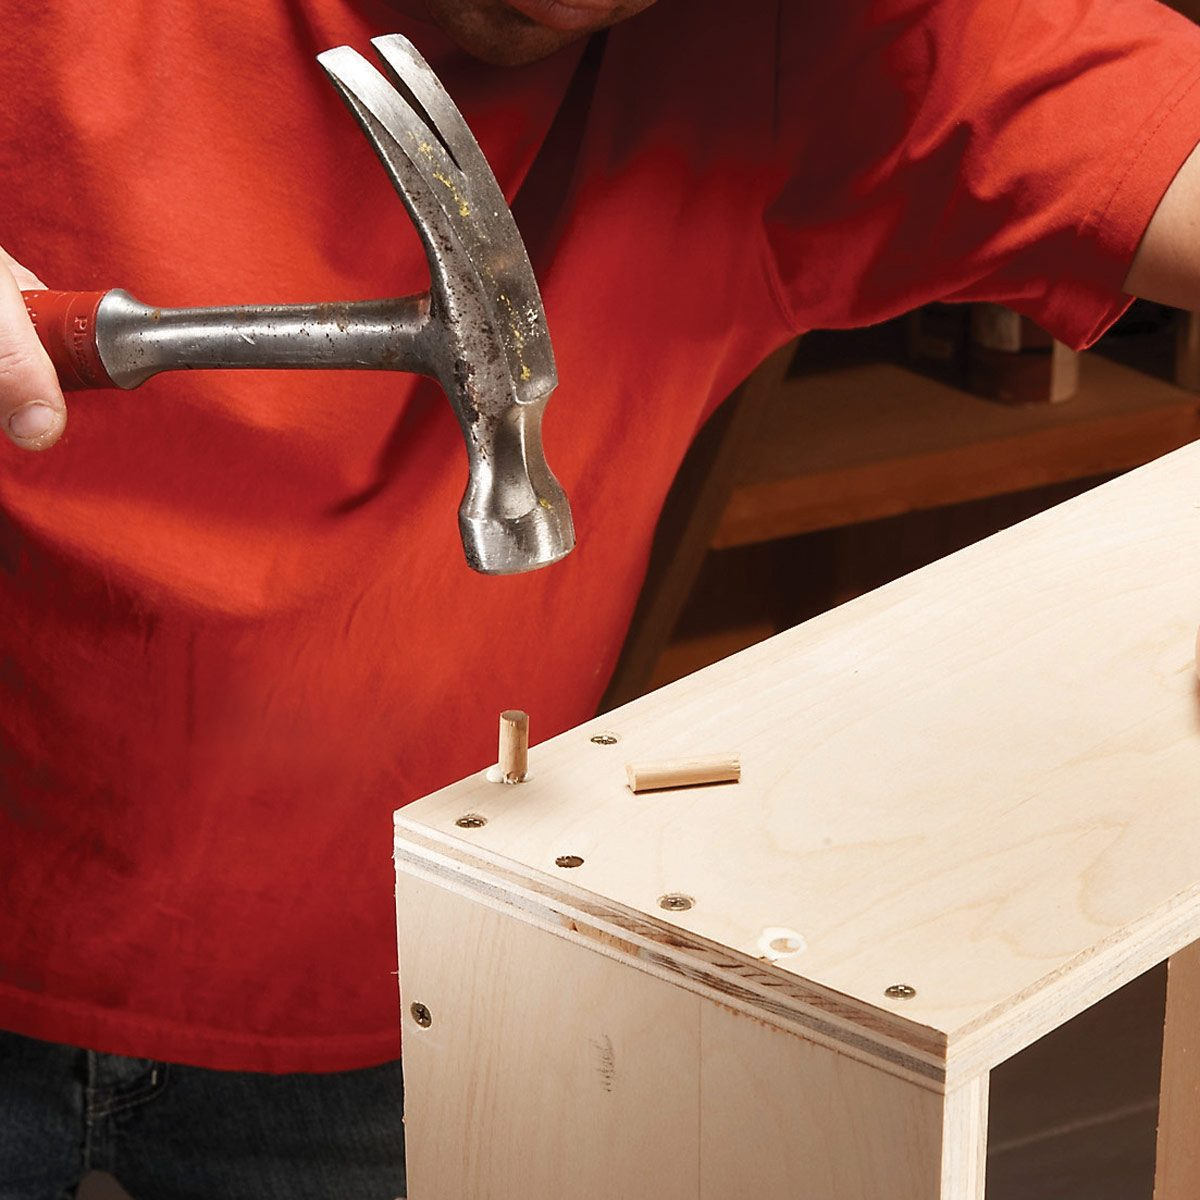 FH07OCT_482_56_011 dowel assemble the cabinet